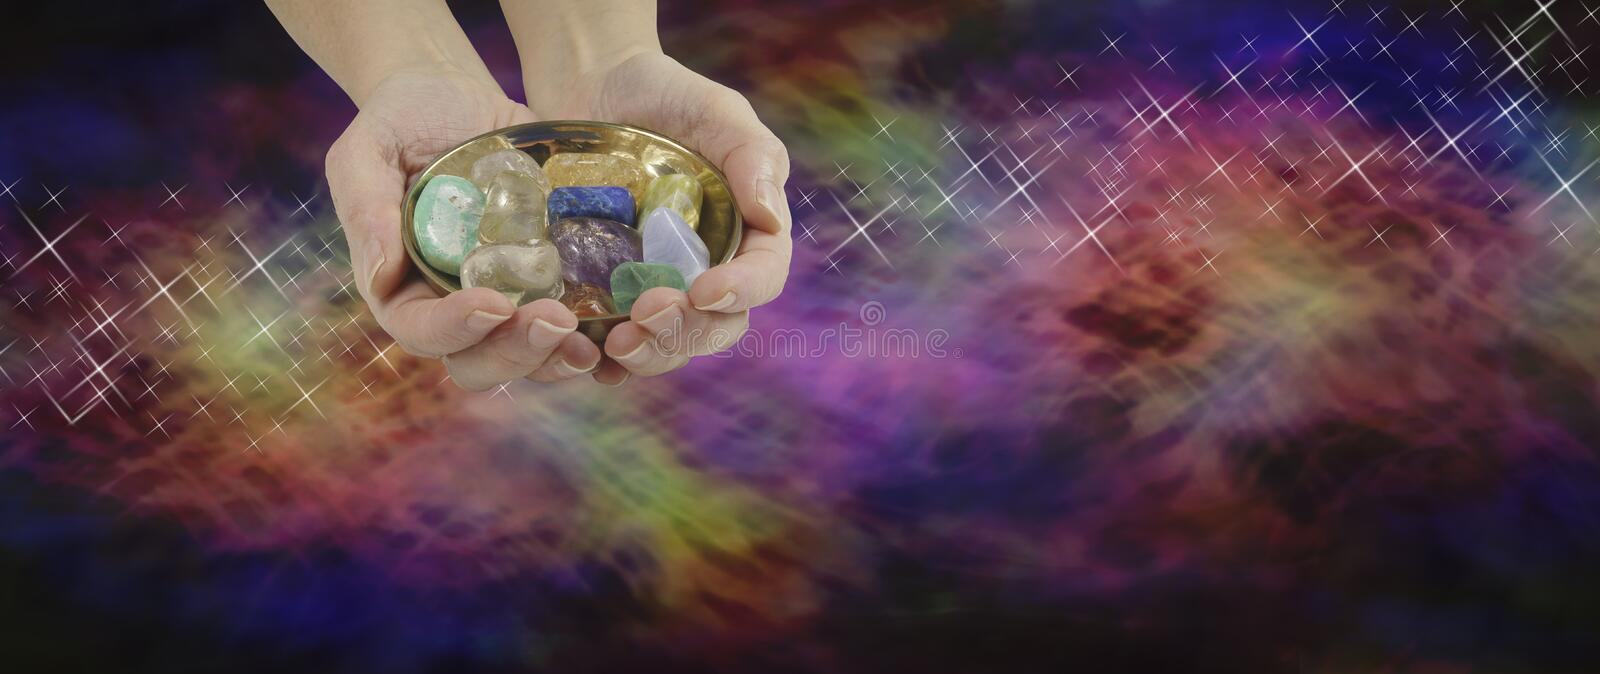 Crystal Therapy Website Banner illustration libre de droits